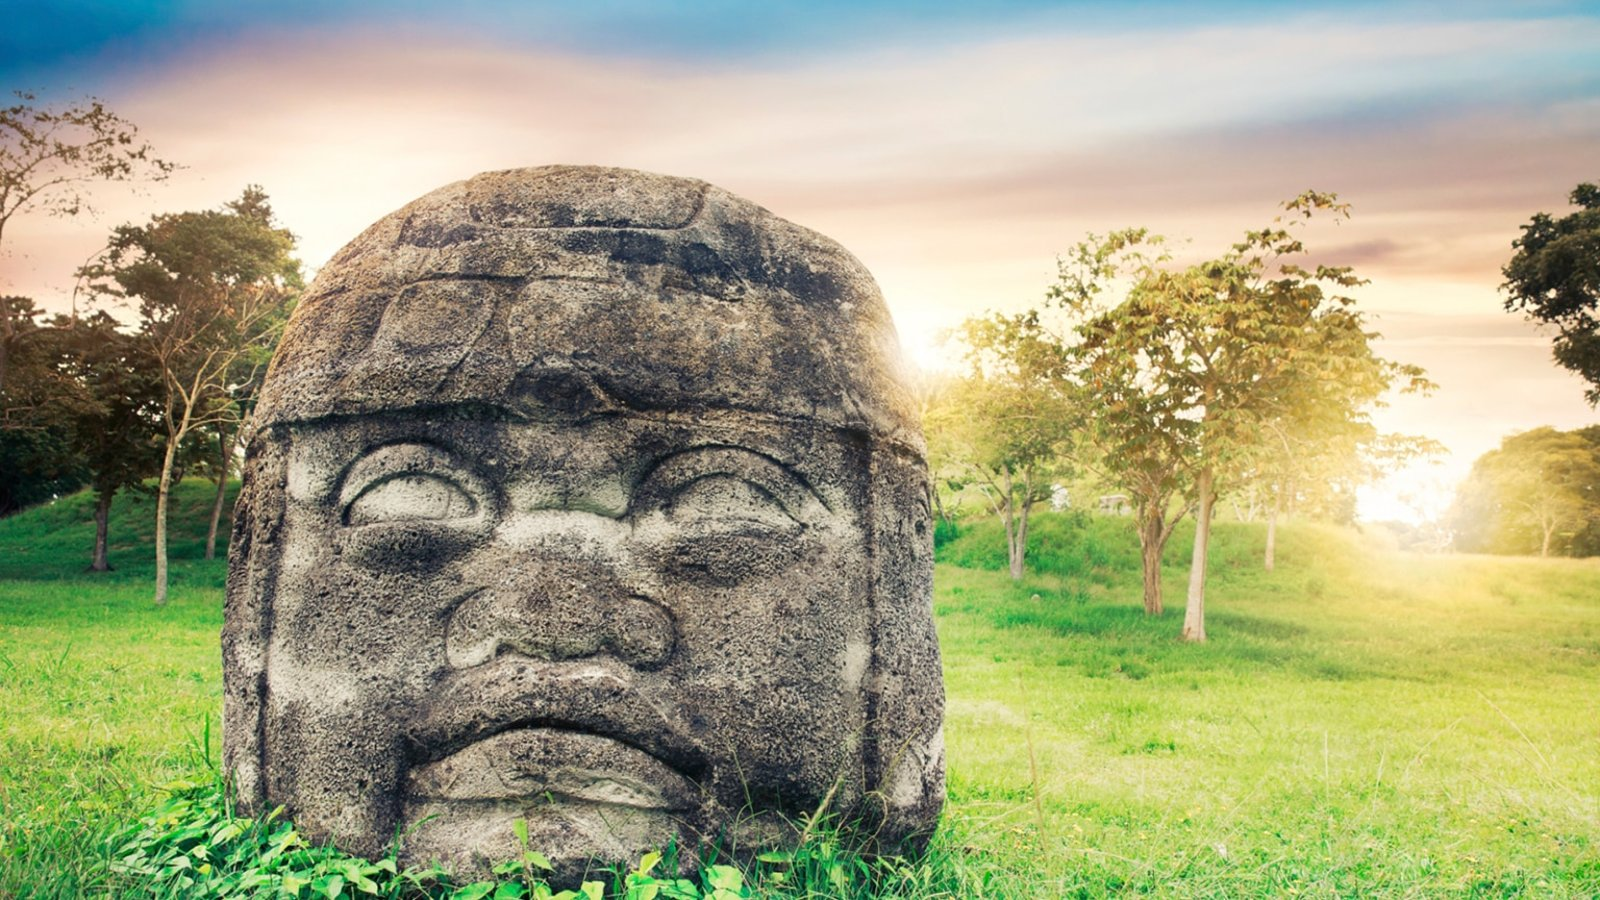 Early Americas: Resources and Olmecs